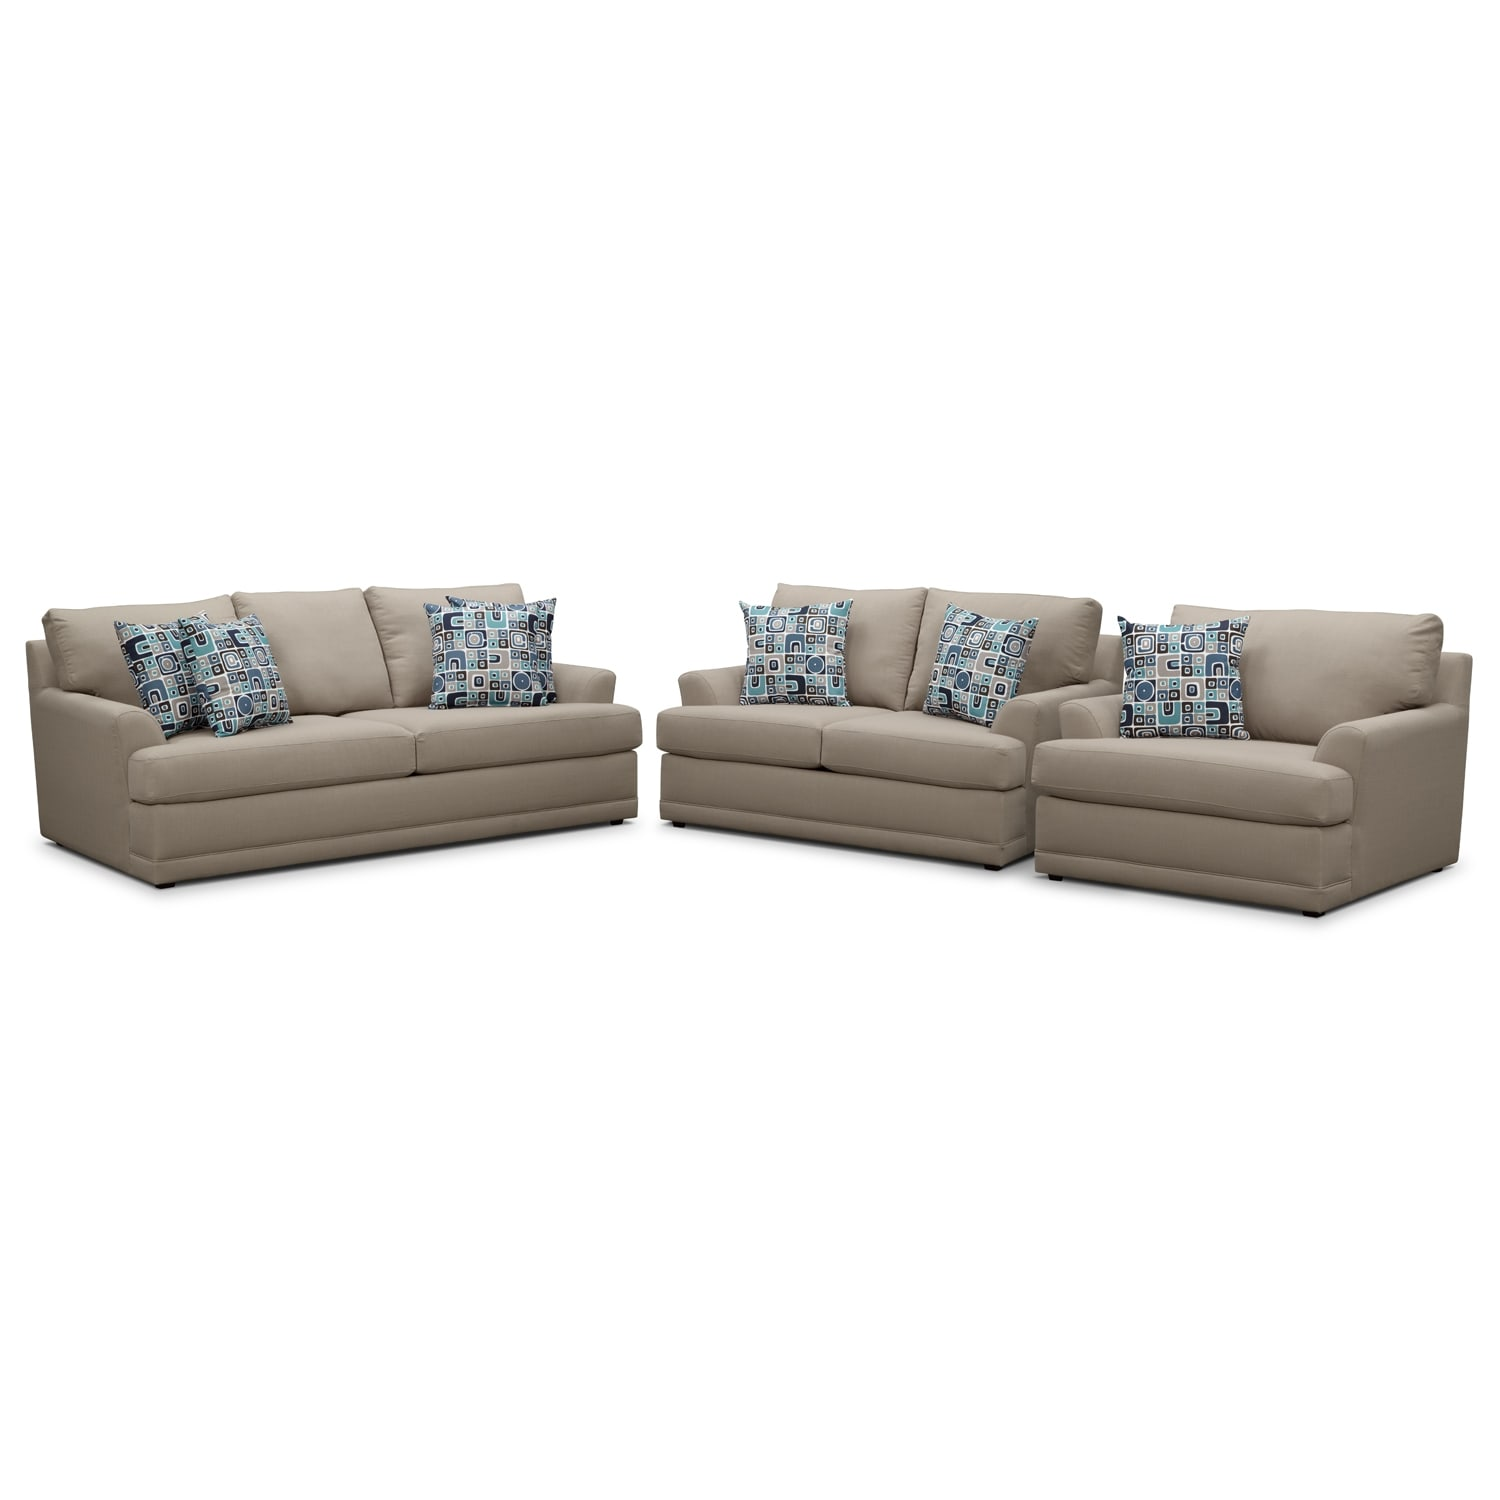 Living Room Furniture - Kismet 3 Pc. Sleeper Living Room with Chair and a Half and Memory Foam Mattress - Gray